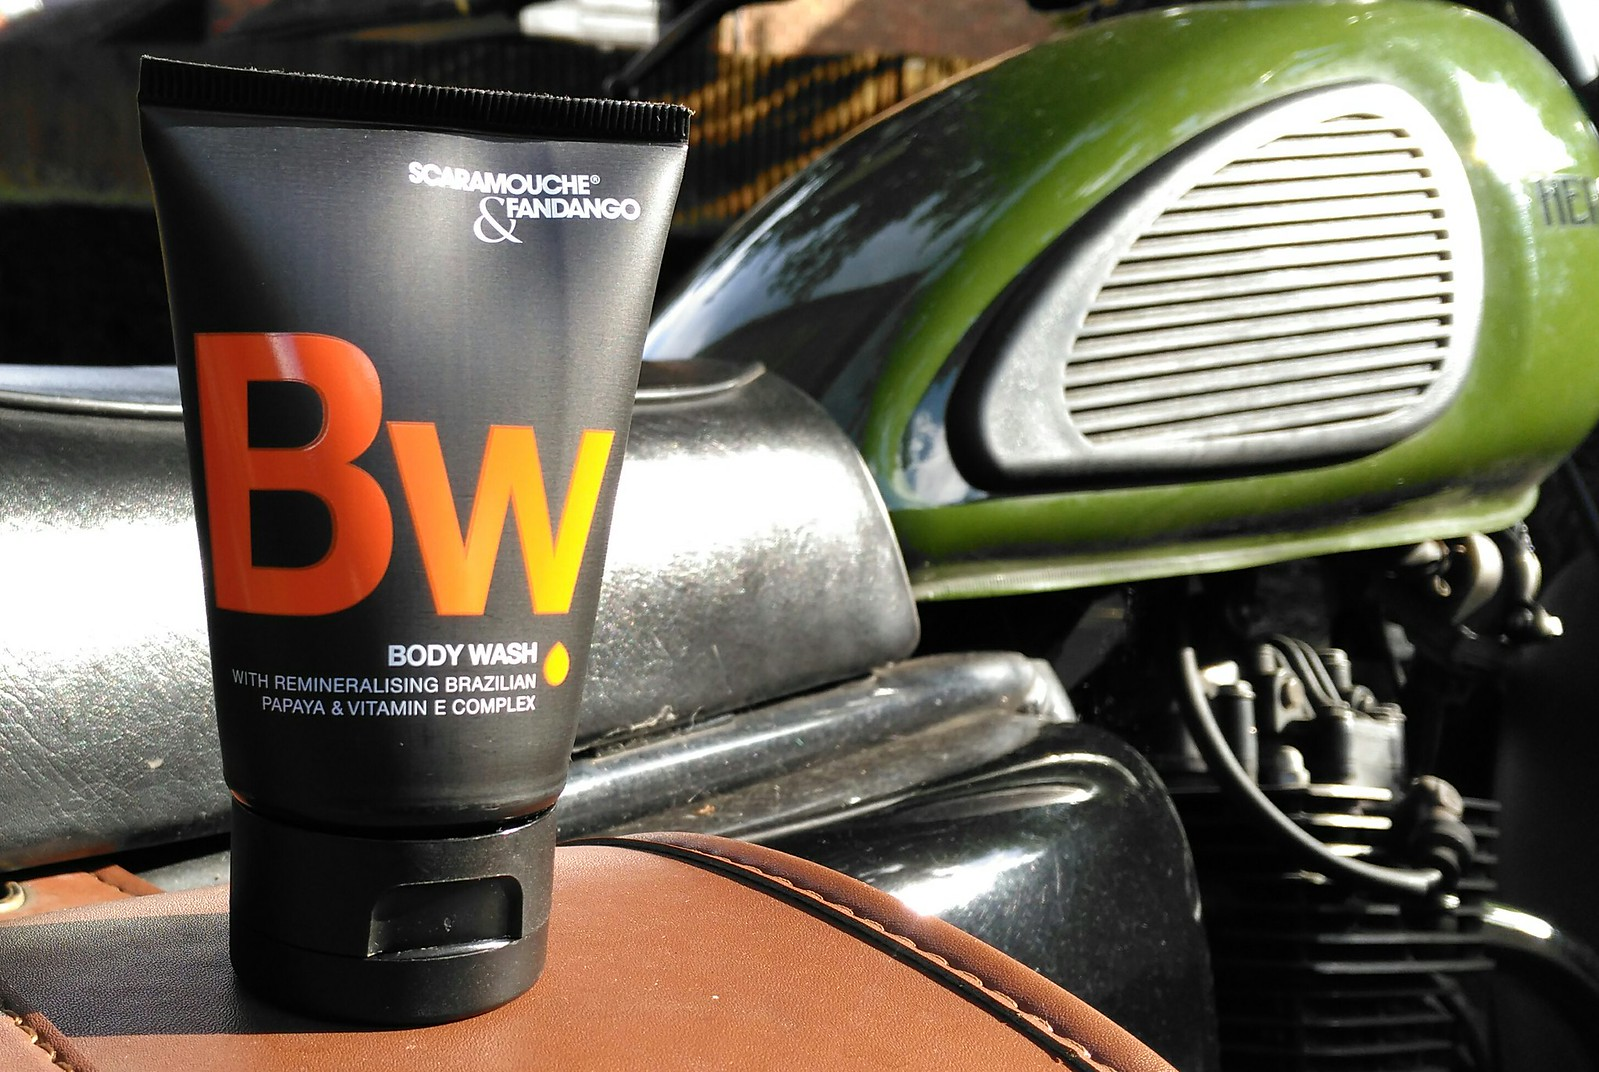 scaramouche fandango body wash